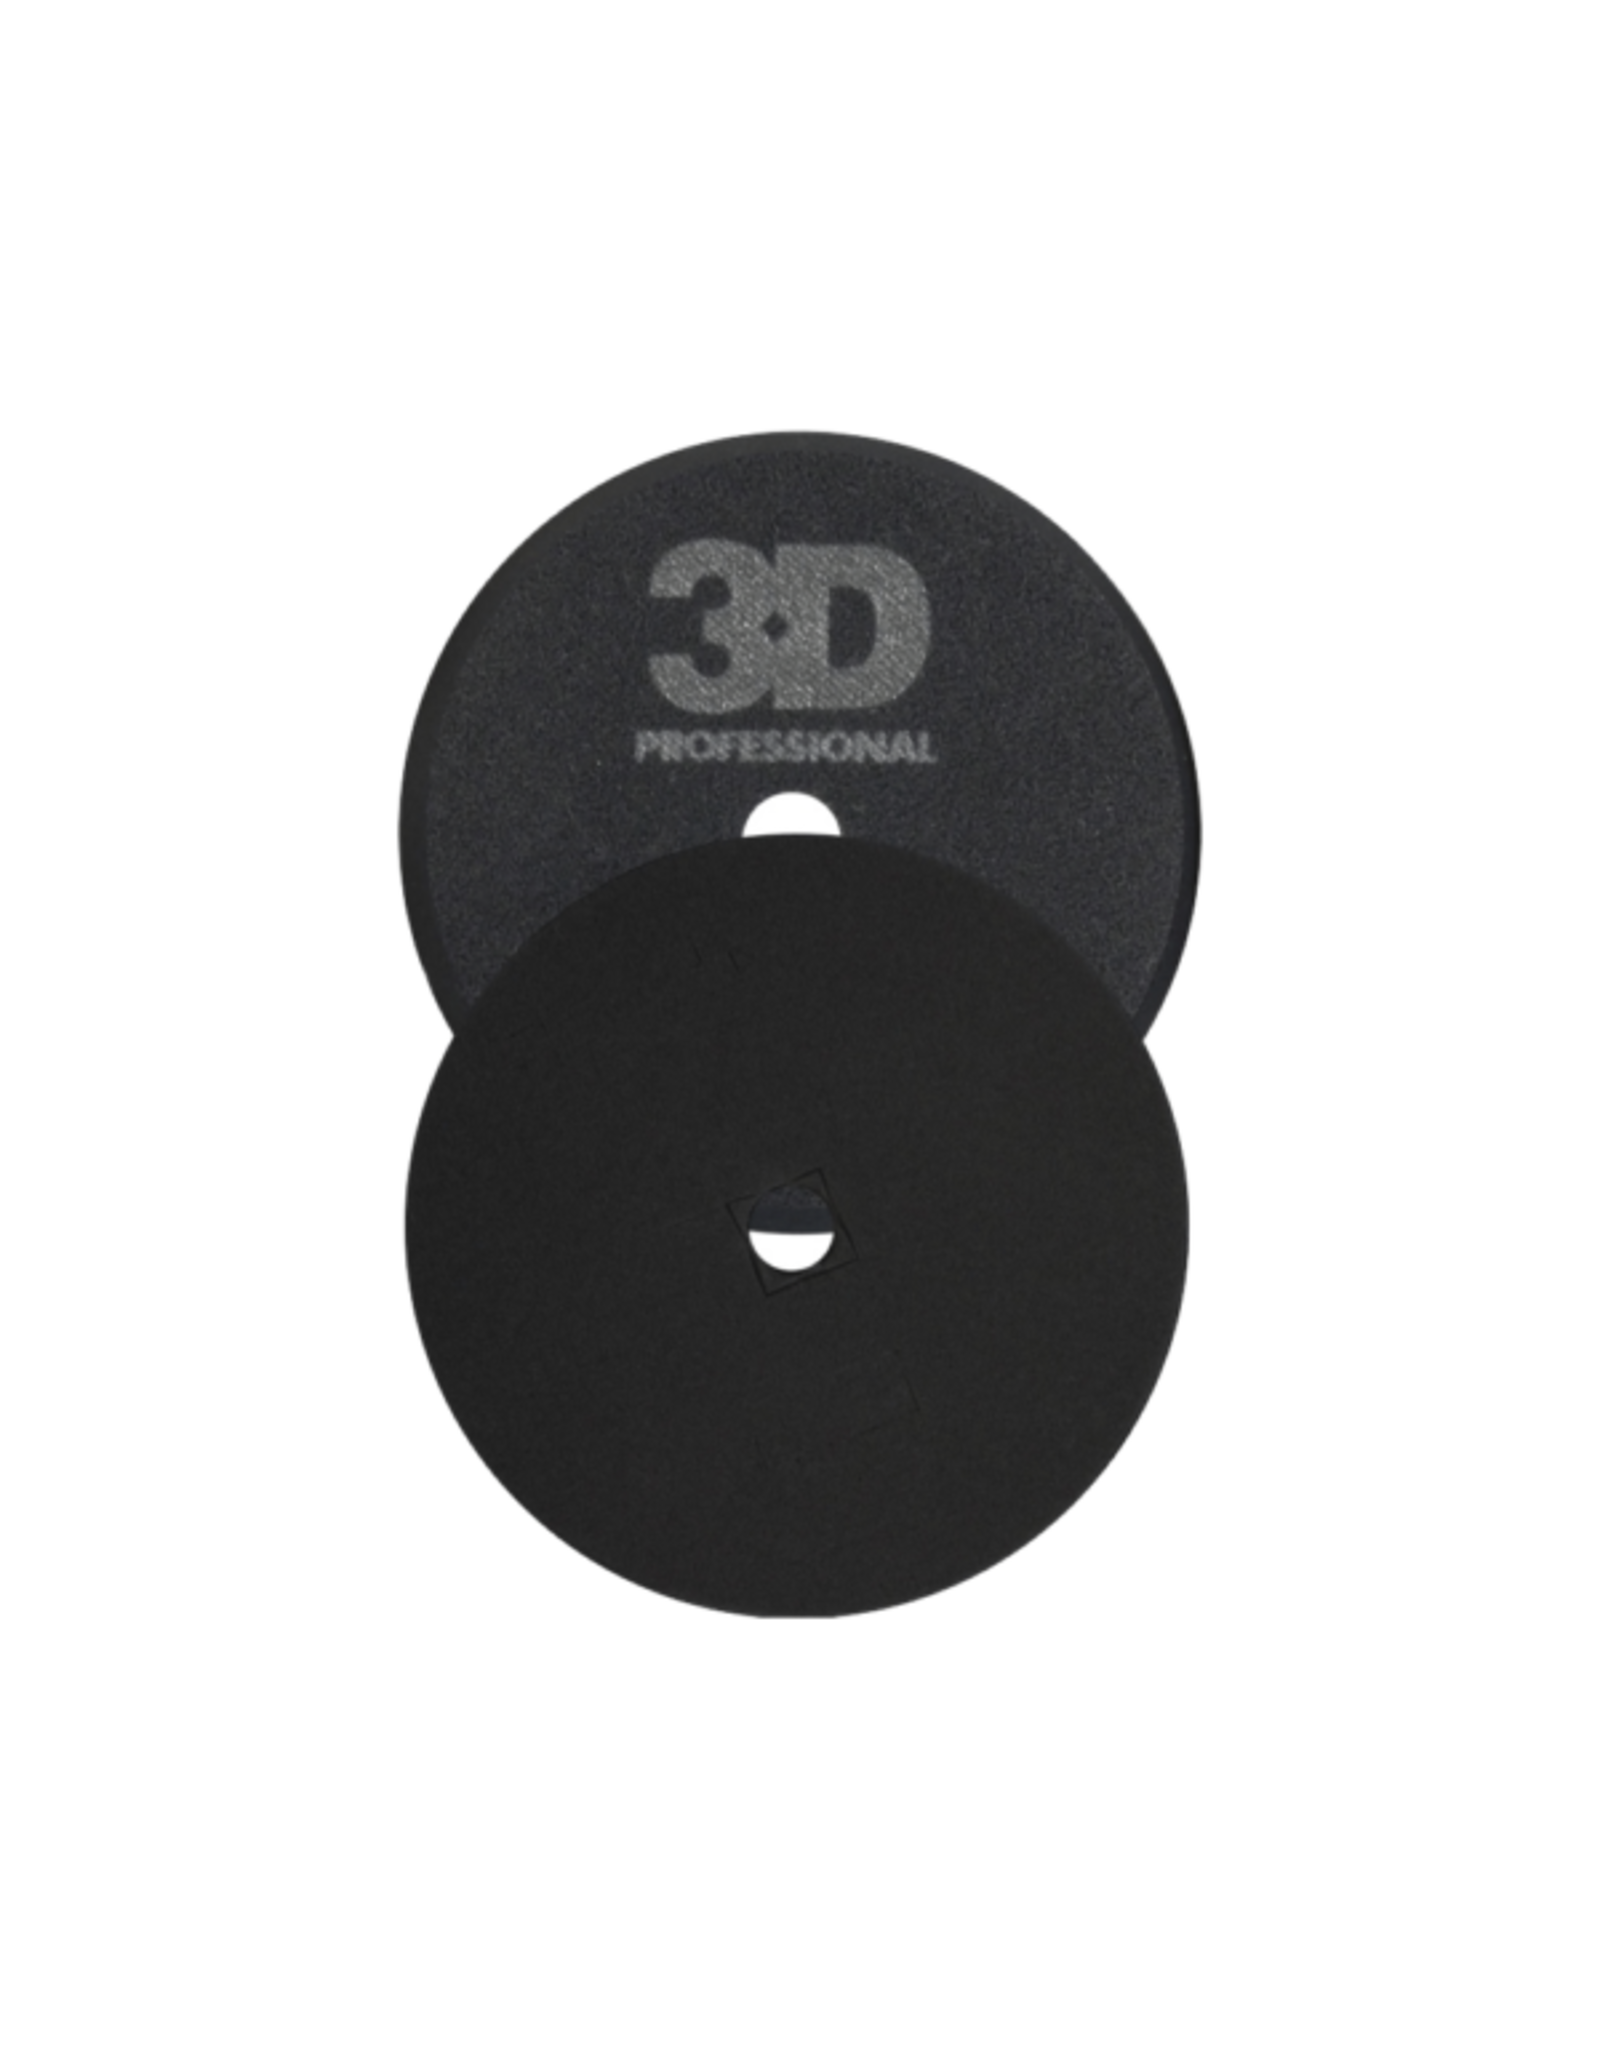 """3D PRODUCTS 3D Foam Finishing Pad Blk 5.5"""" / 140 mm - Single Pack"""